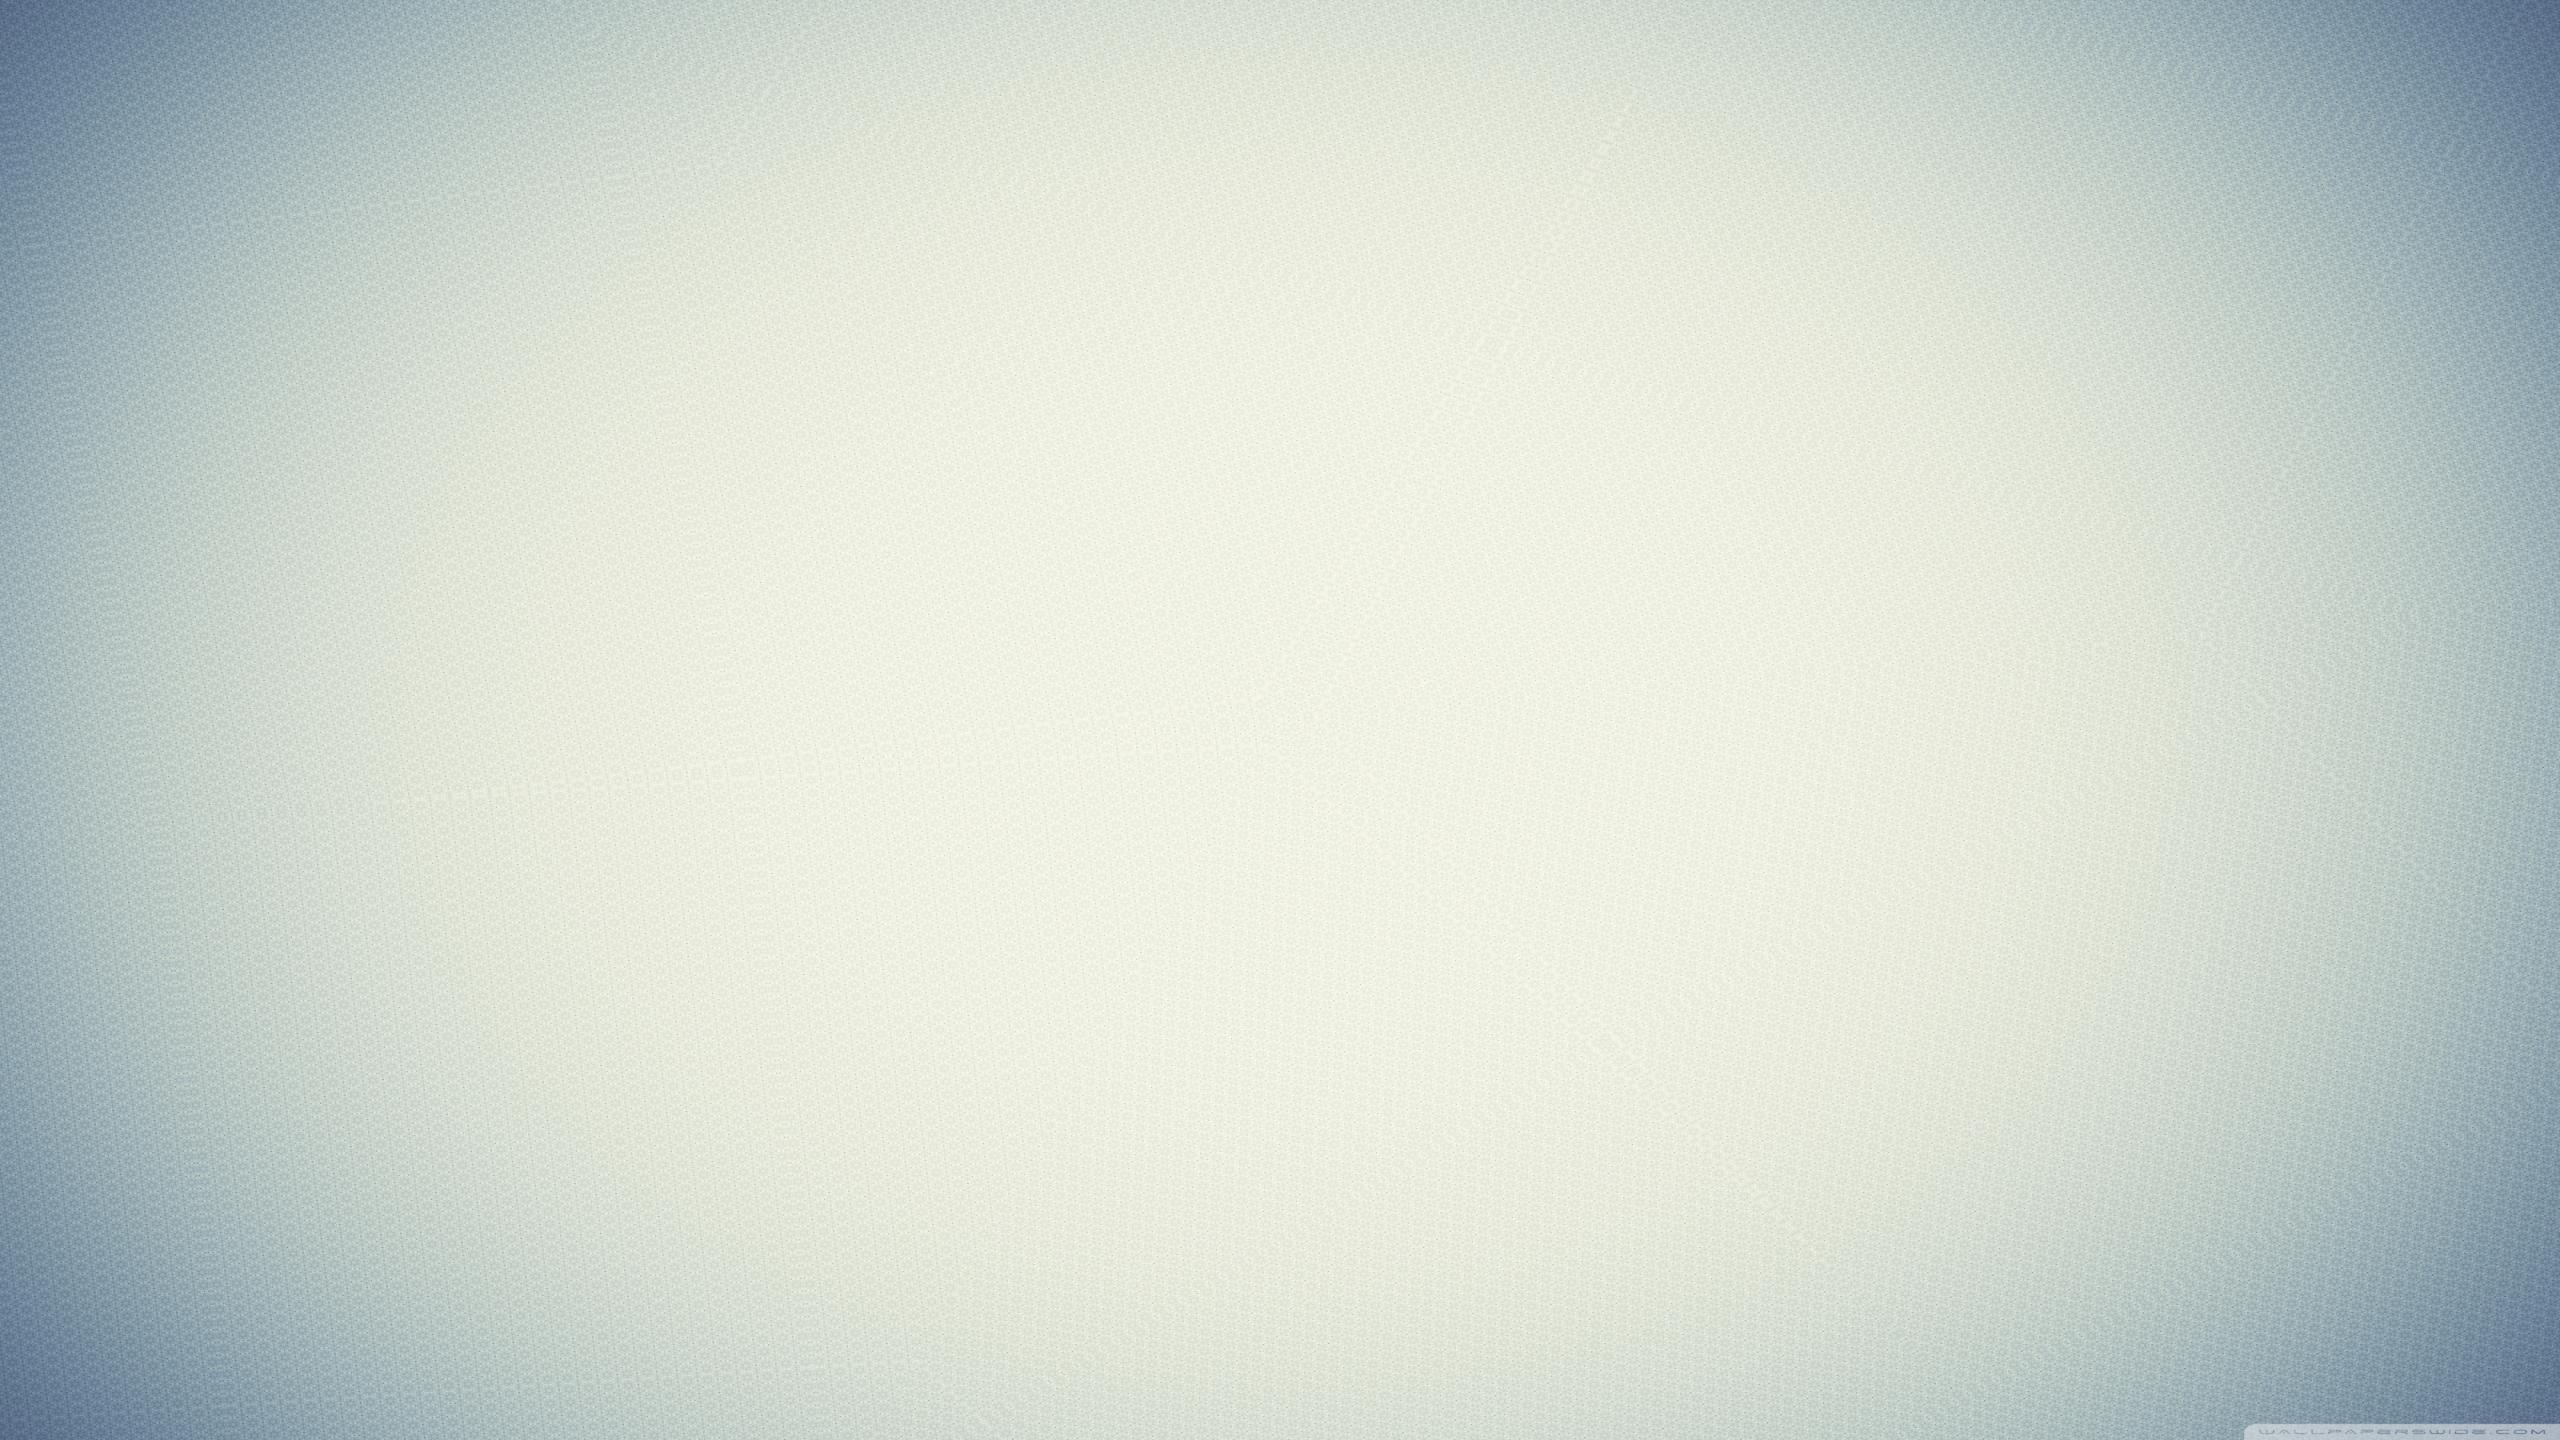 Cool white background - Best White Background Textures Wallpapers 2560 1440